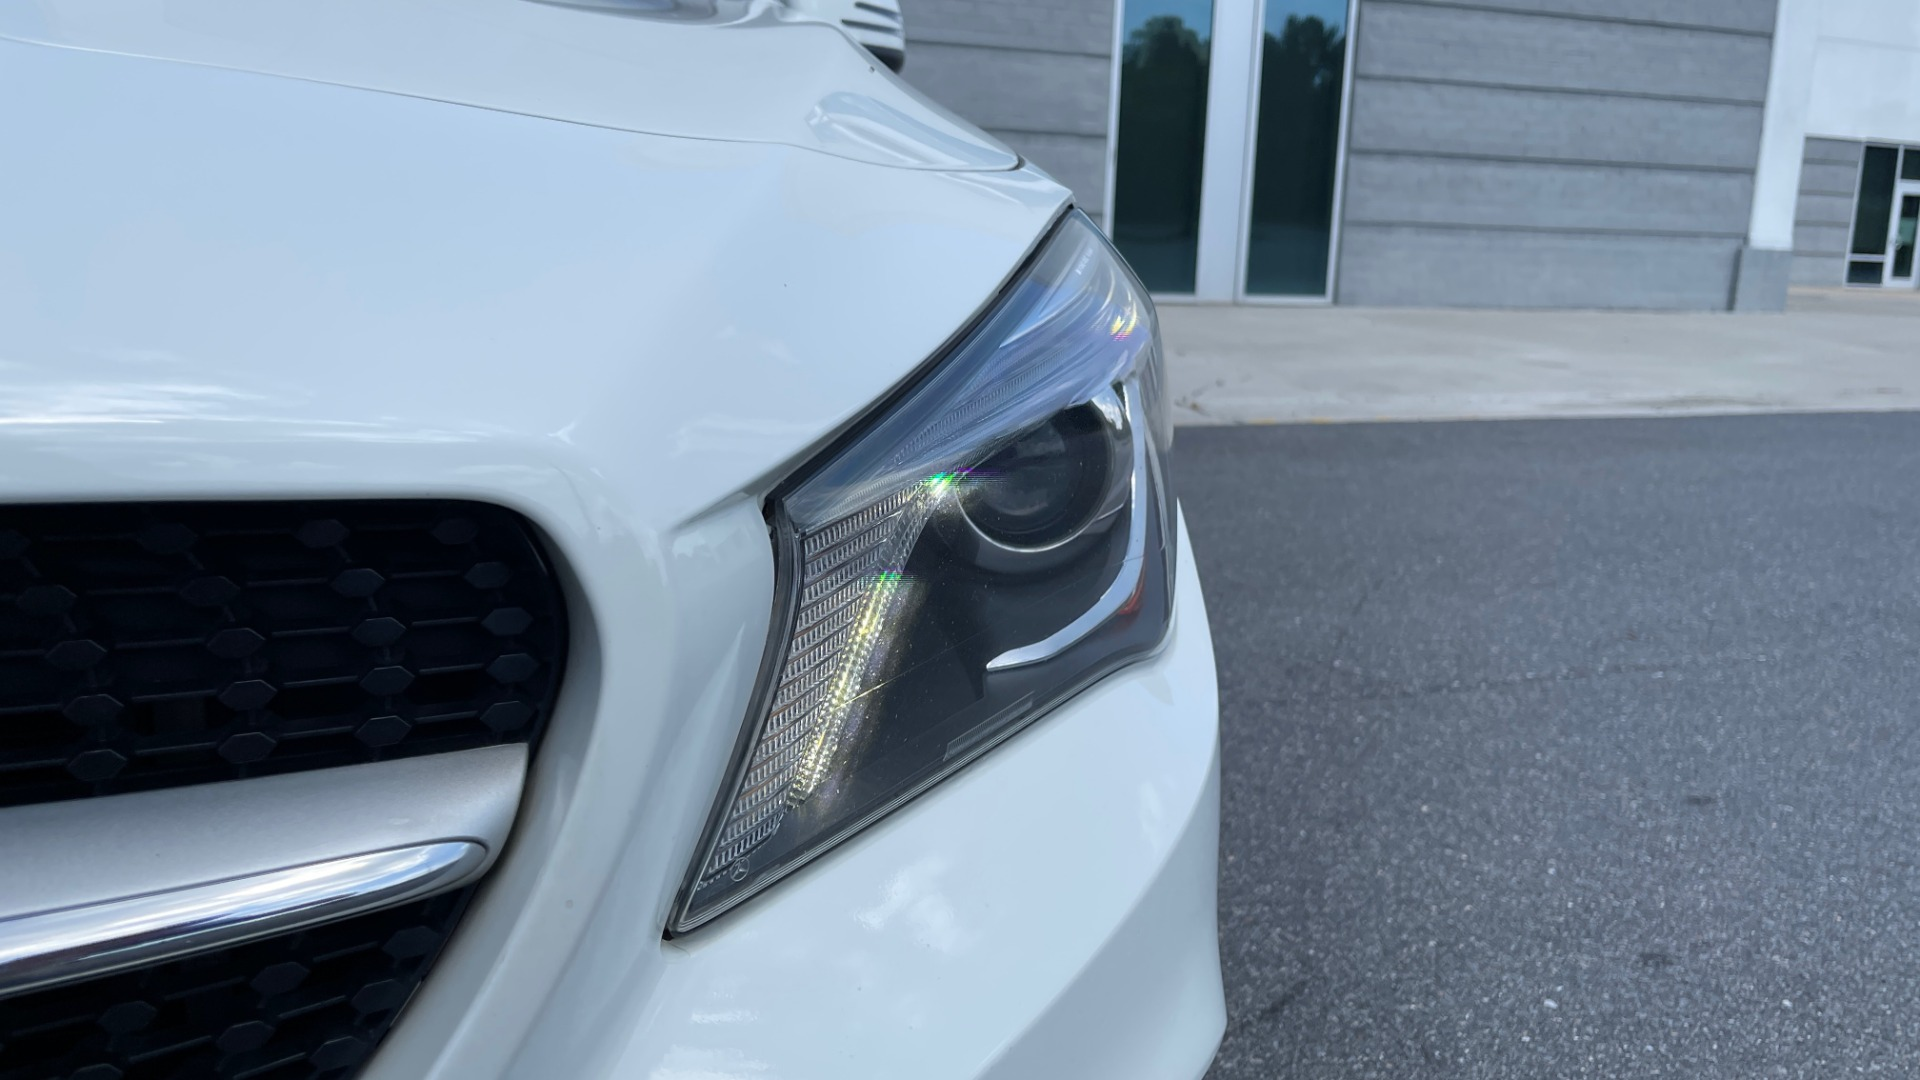 Used 2014 Mercedes-Benz CLA-Class 250 PREMIUM / NAV / MULTIMEDIA PKG / PANO-ROOF / REARVIEW for sale $19,495 at Formula Imports in Charlotte NC 28227 12